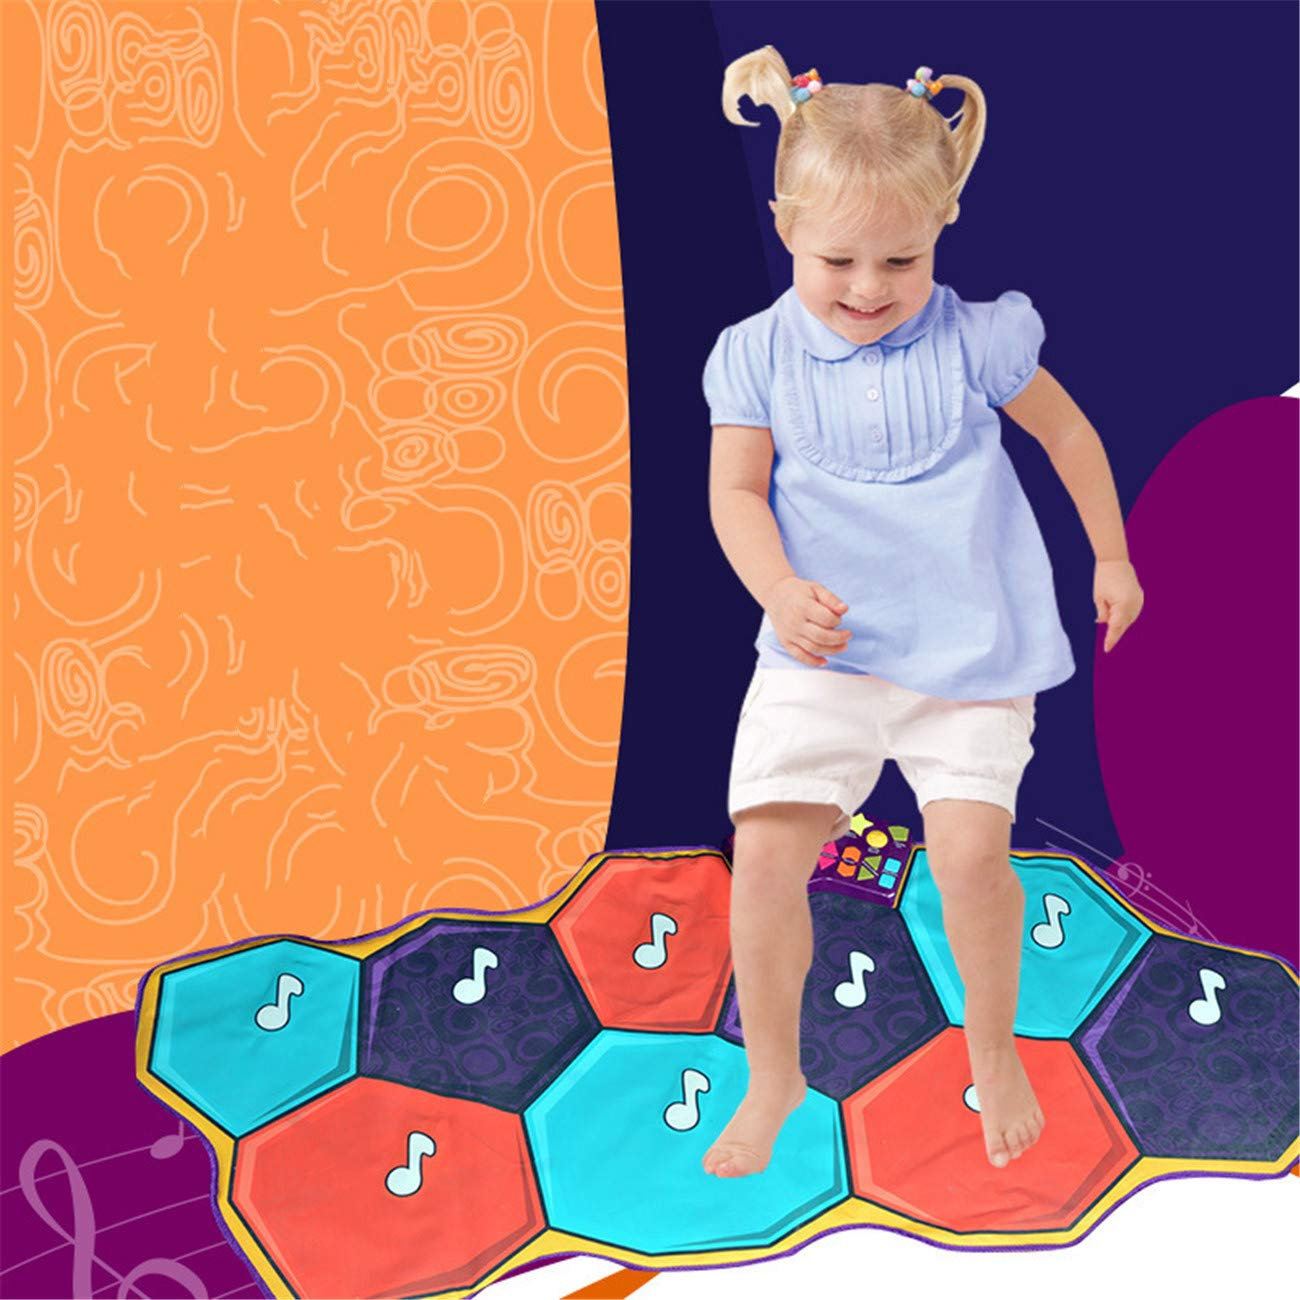 Dance mat children's game blanket sports hot dance children crawling mat music dance blanket by Shwk (Image #3)